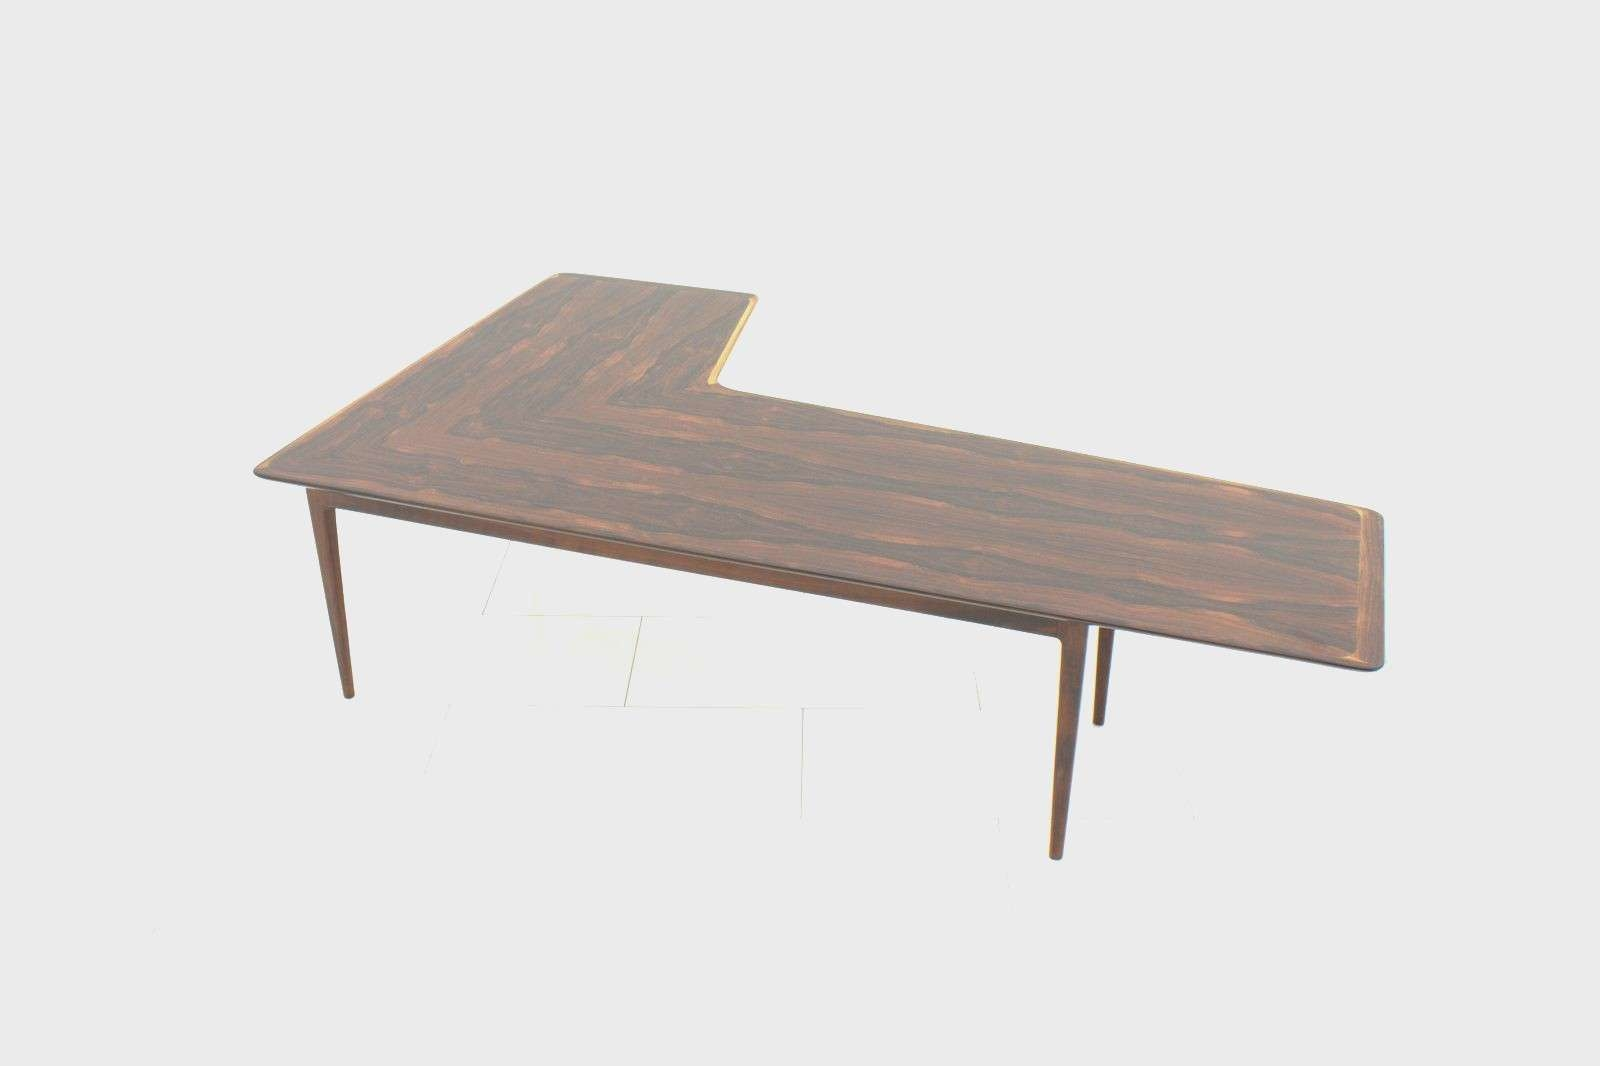 Coffee Table : Coffee Table For L Shapedouch Shape Tables Regarding Widely Used L Shaped Coffee Tables (View 4 of 20)